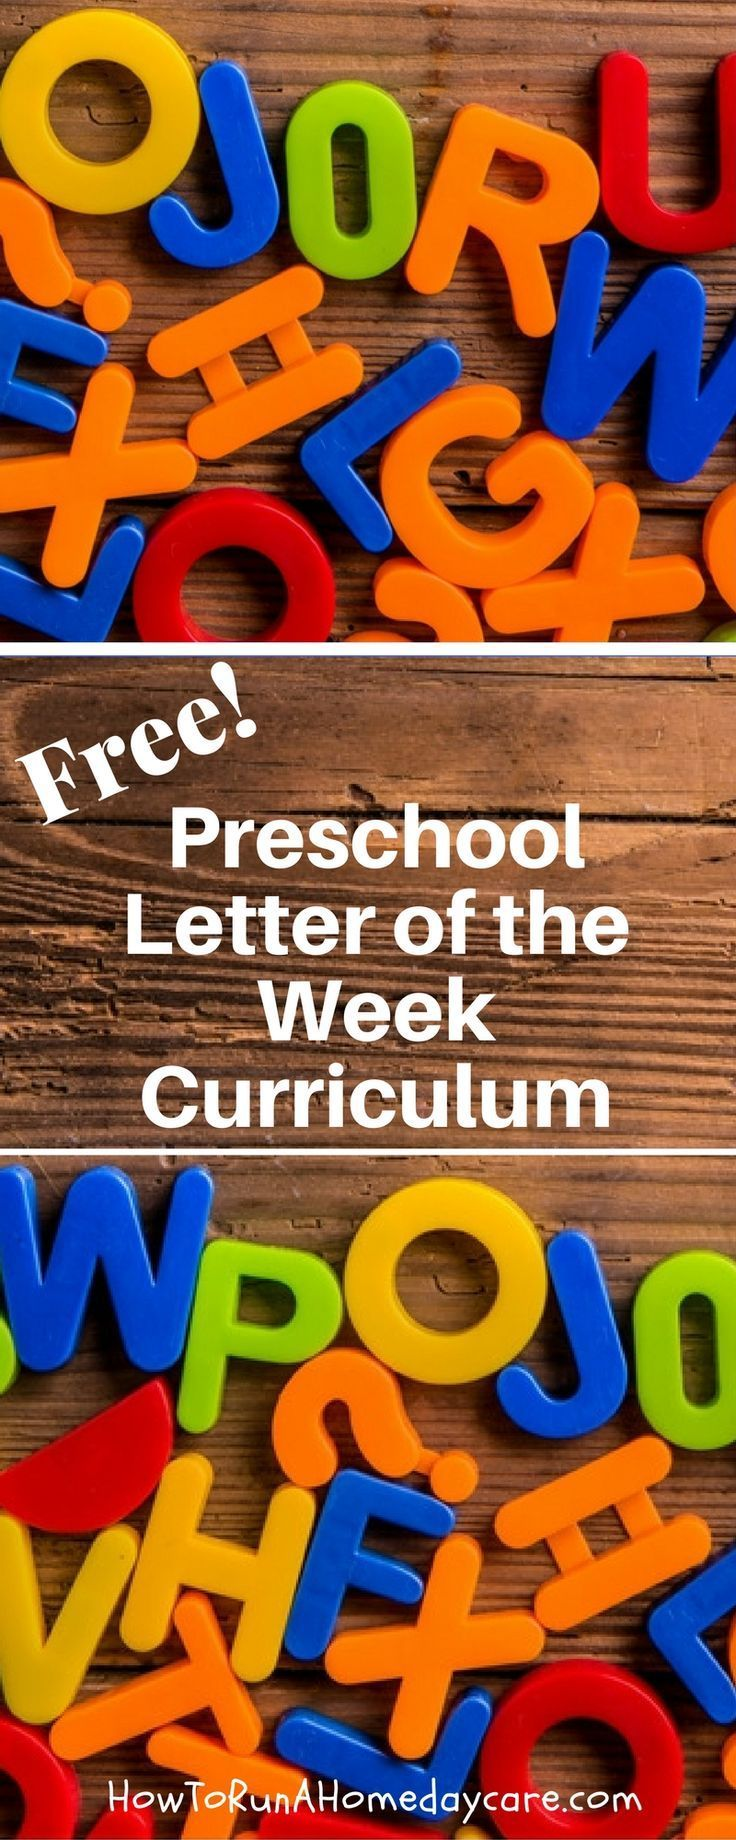 Complete Free Curriculum! Includes playful outdoor activities, story telling, crafts, fine motor work, group games and more.